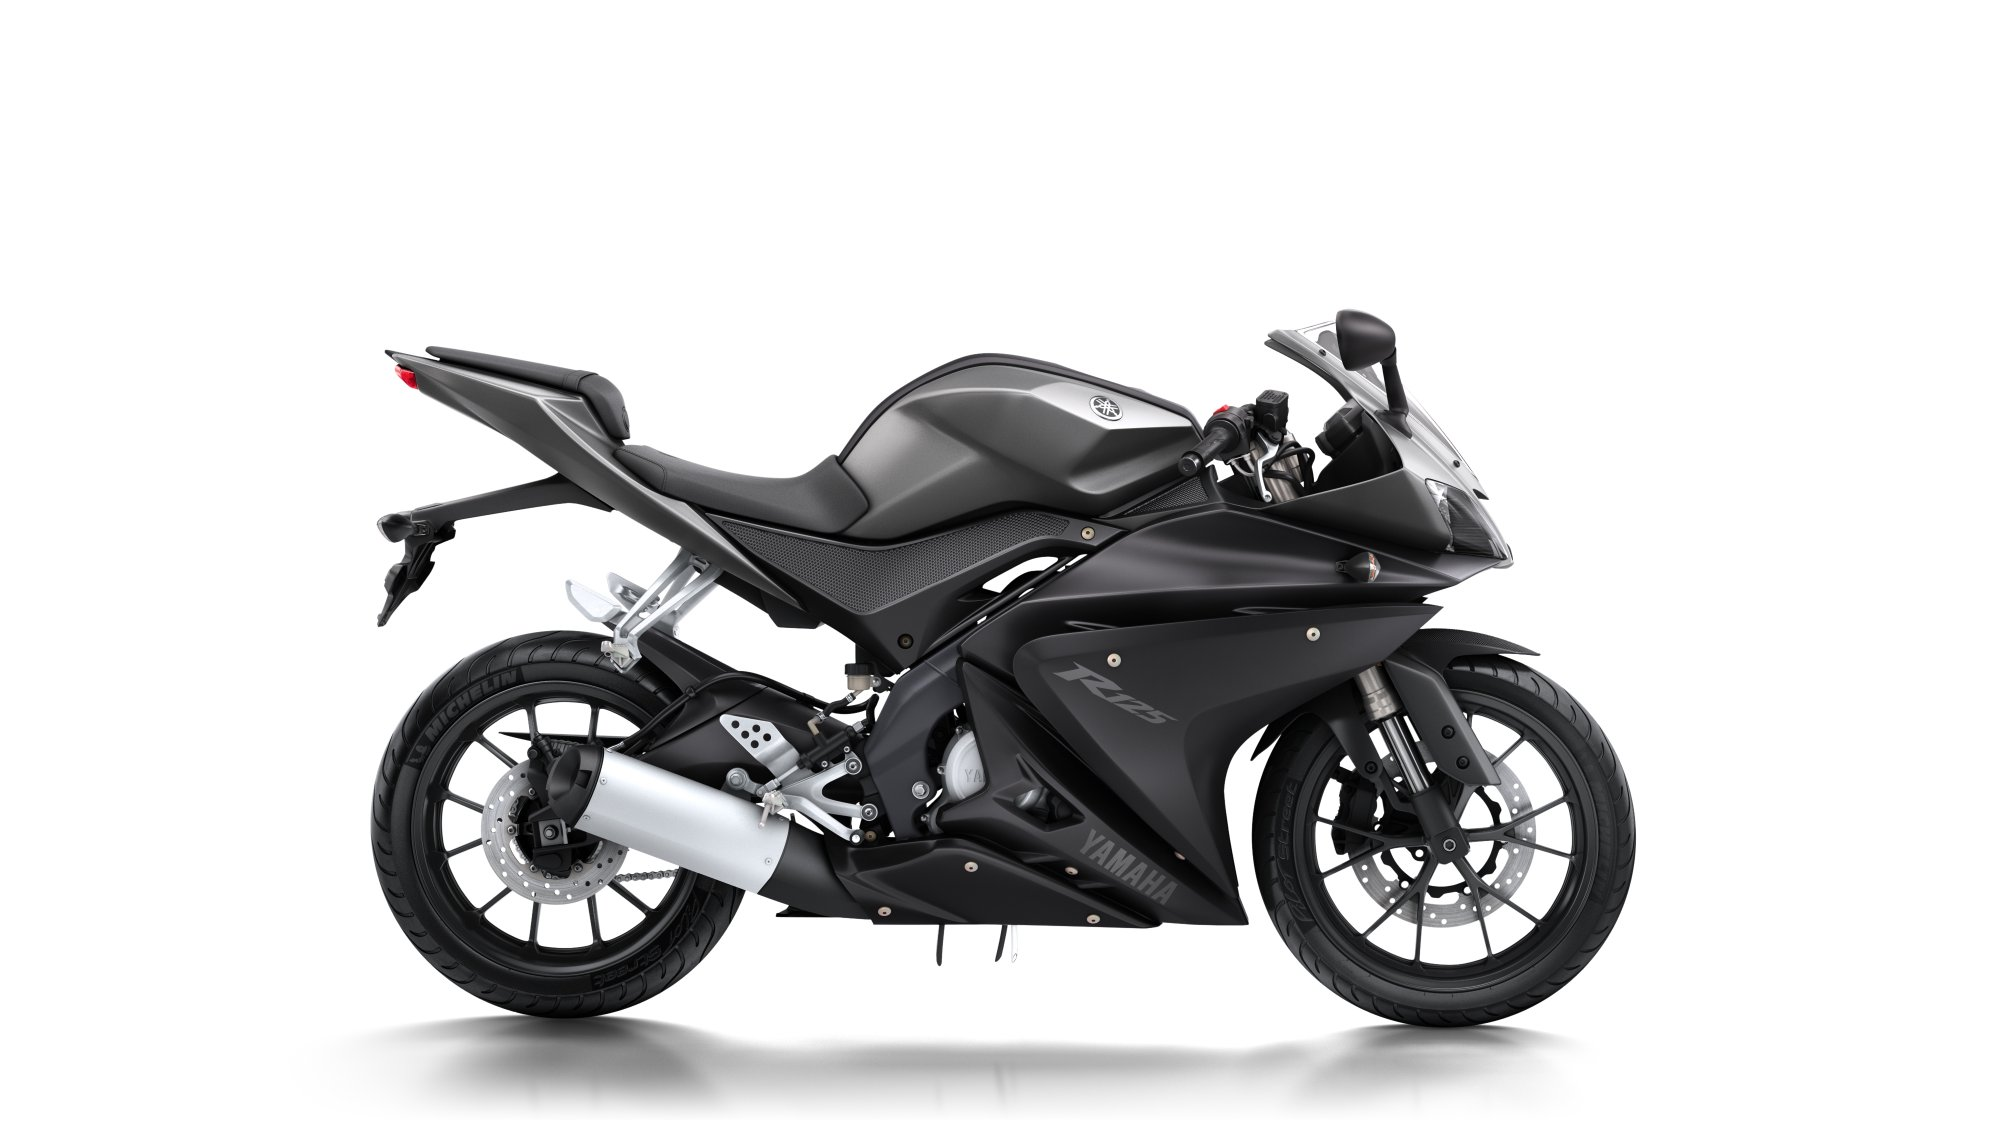 yamaha yzf r125 alle technischen daten zum modell yzf r125 von yamaha. Black Bedroom Furniture Sets. Home Design Ideas